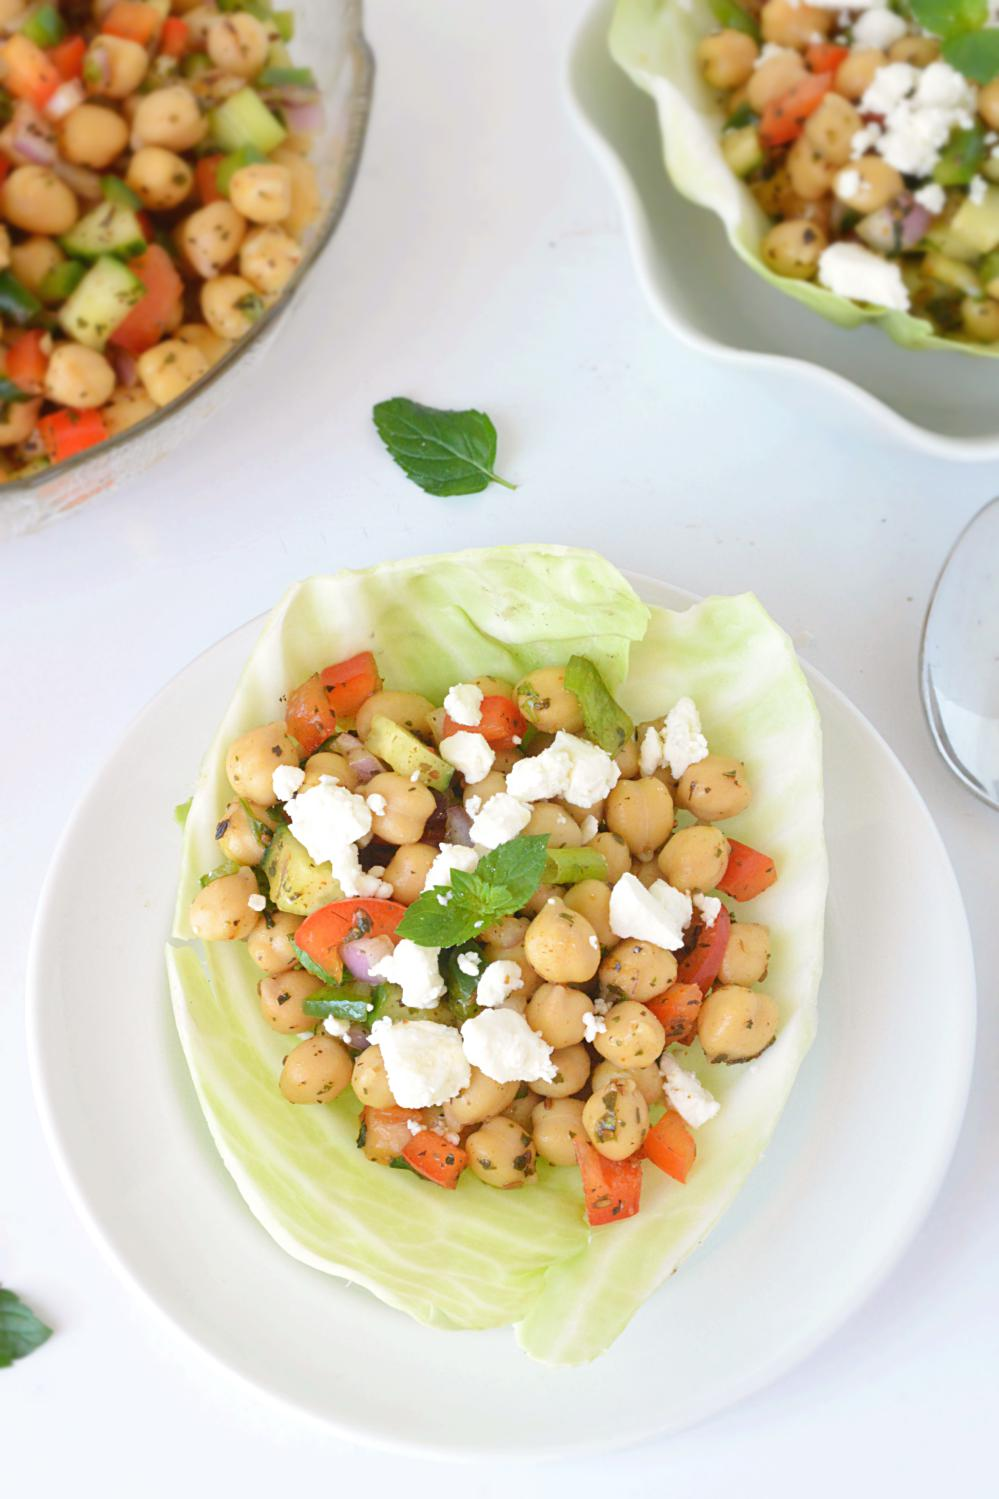 Chana Salad or Chickpea Salad